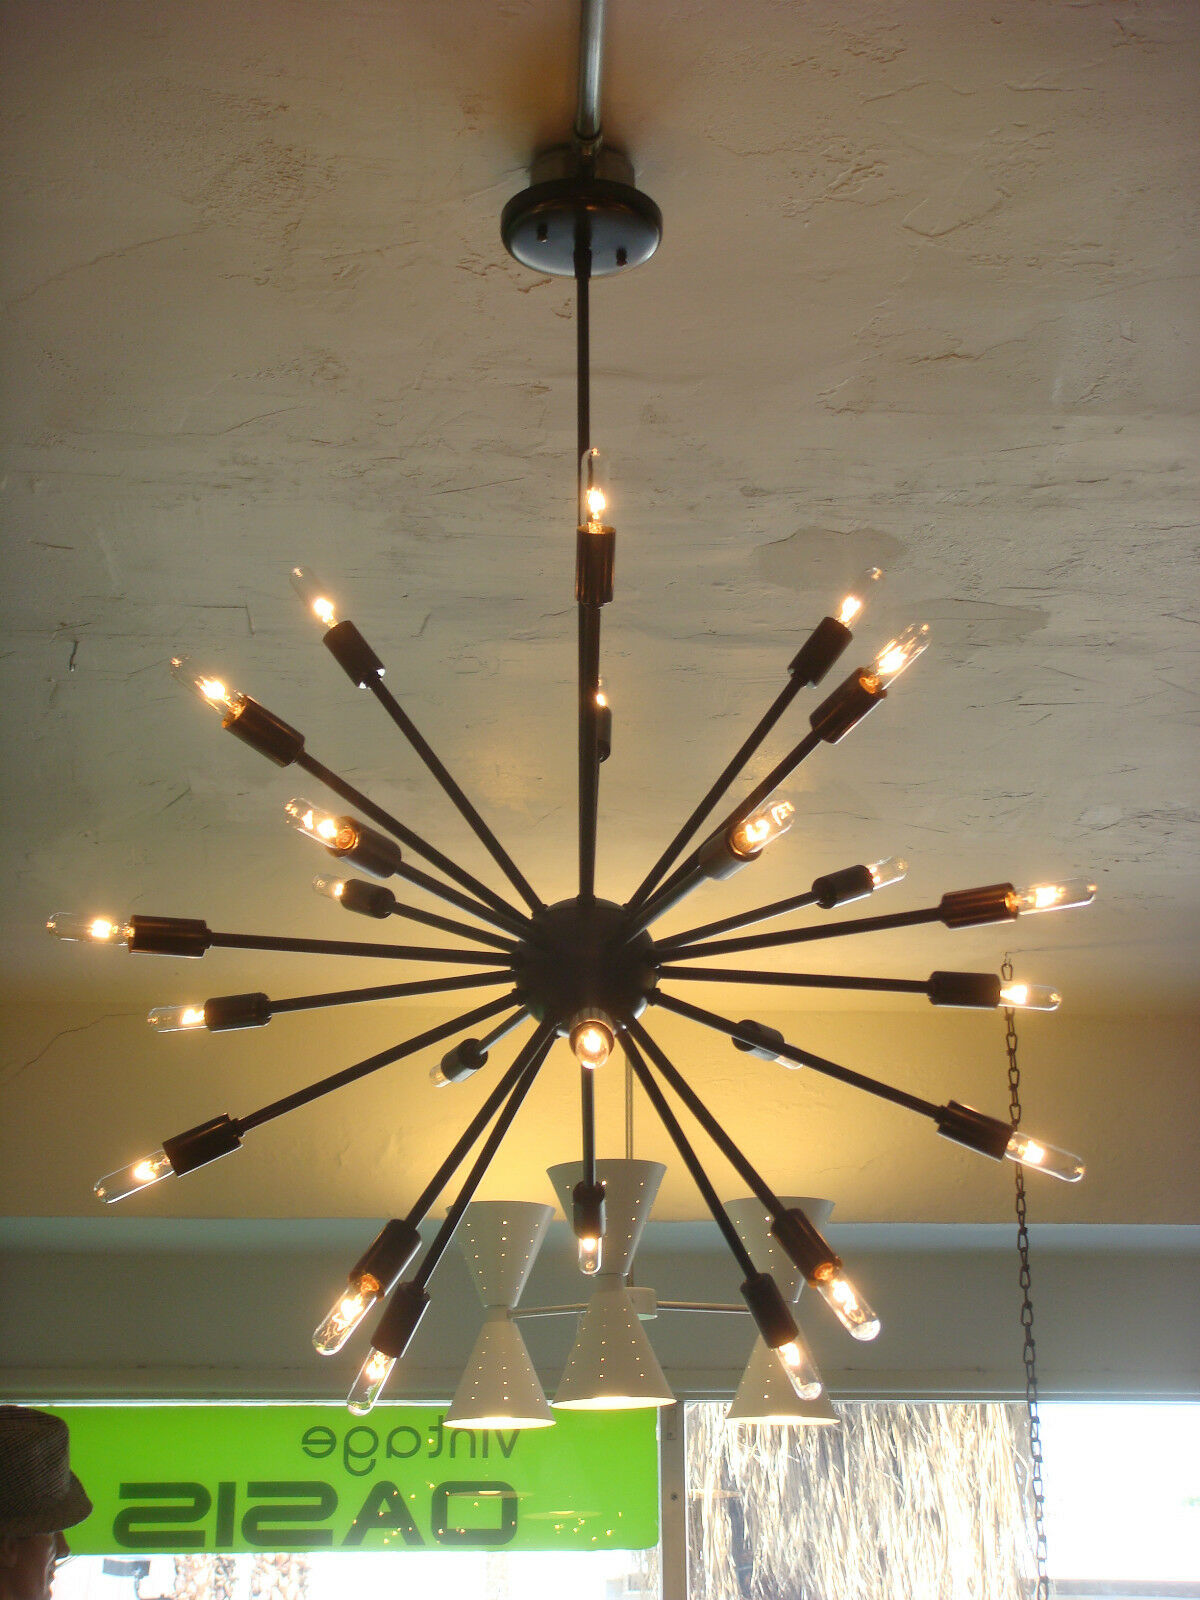 Oil rubbed bronze atomic sputnik starburst light fixture chandelier pendant lamp - Light fixture chandelier ...